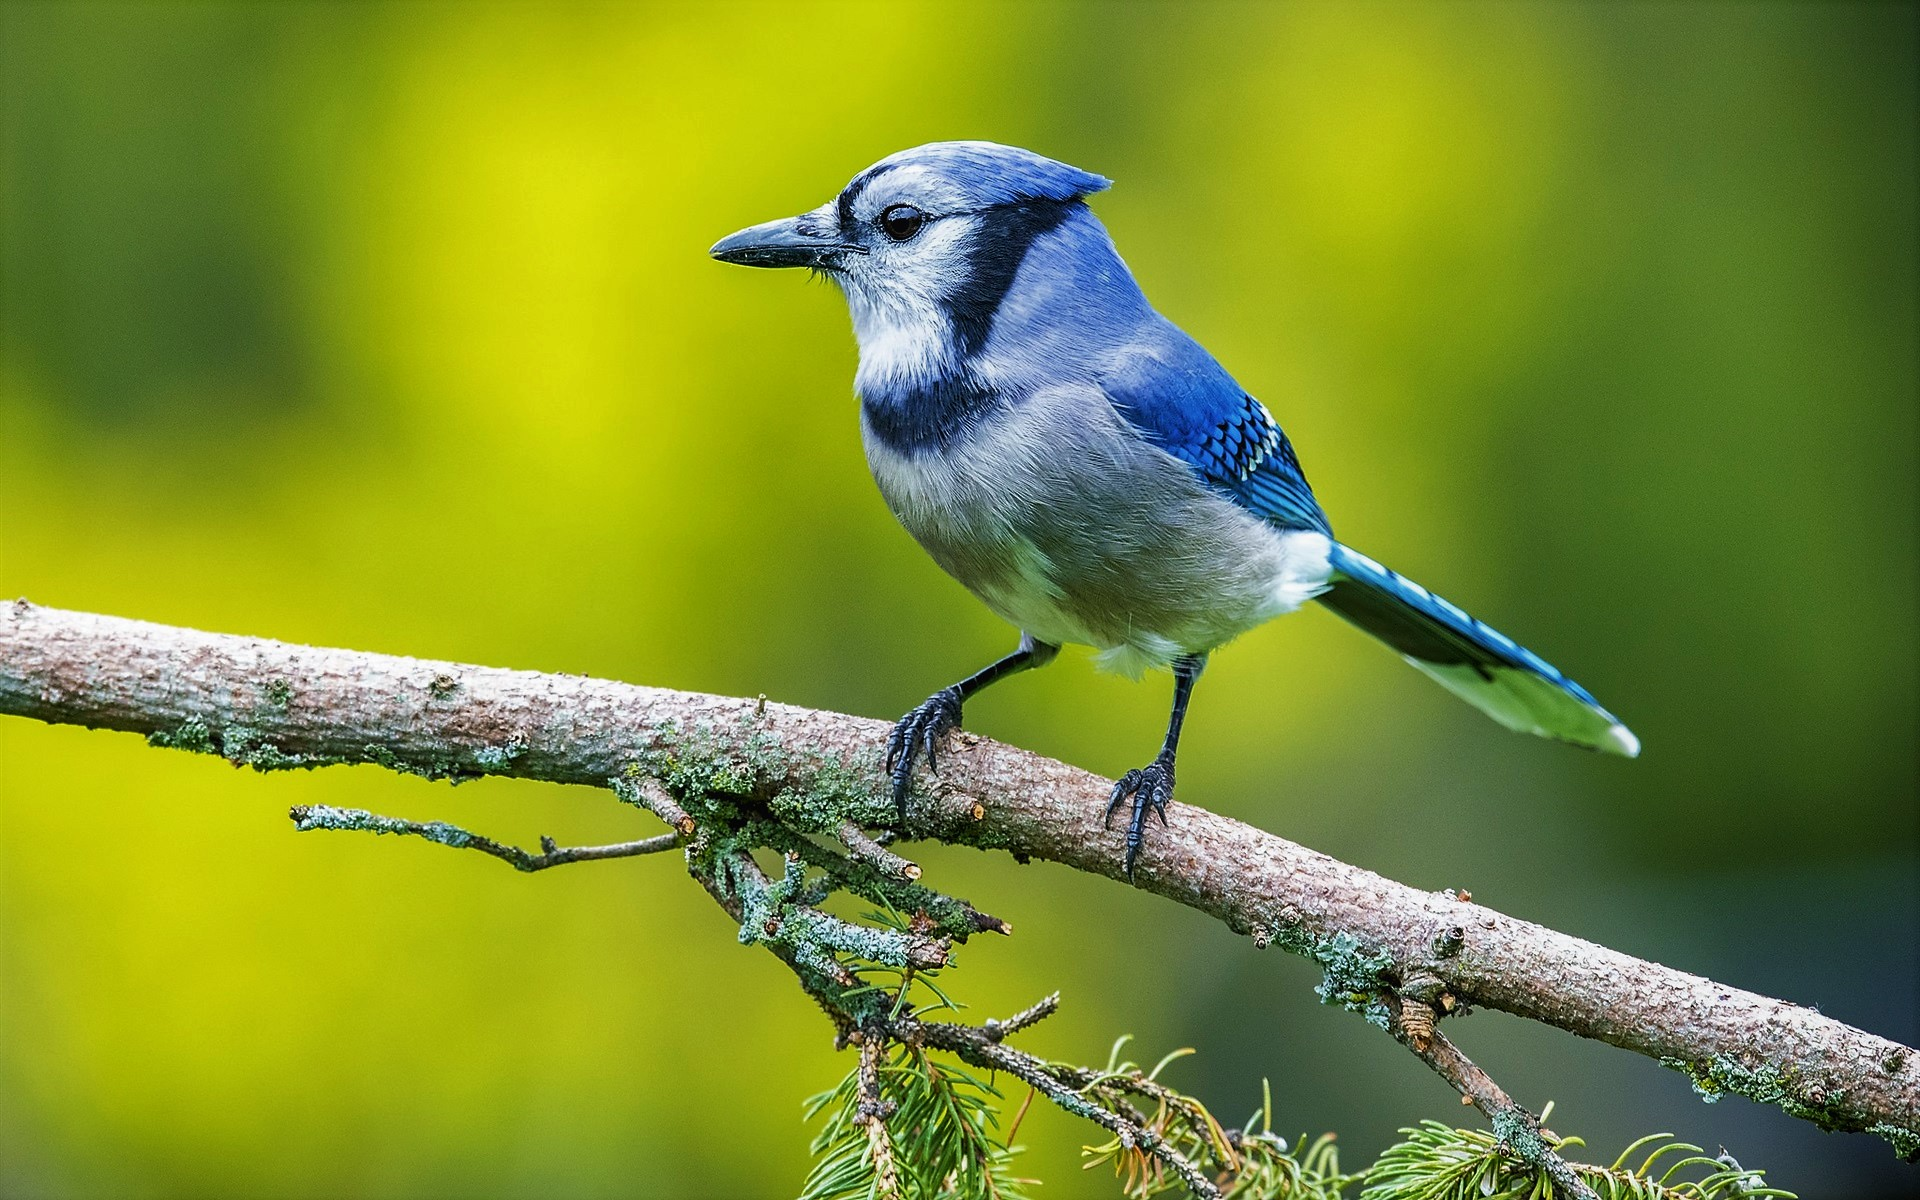 Blue Jay, branch, wildlife, bokeh, small bird, Cyanocitta cristata